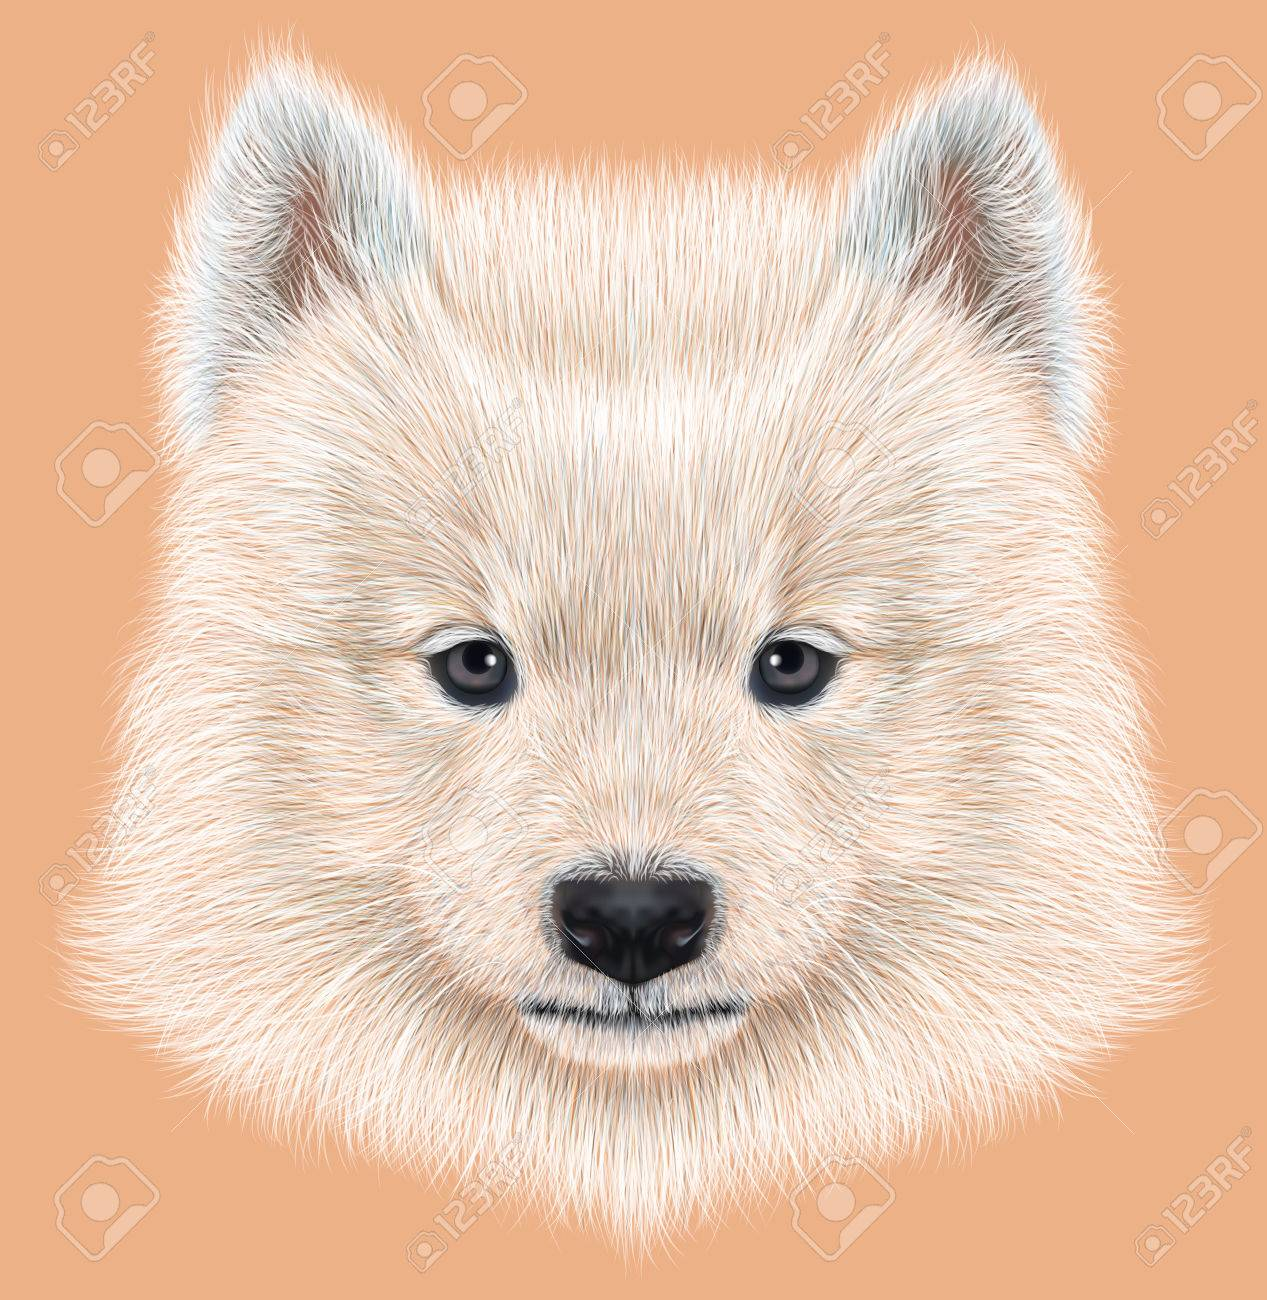 Cute Face Of Samoyed Puppy On Peach Color Background Stock Photo